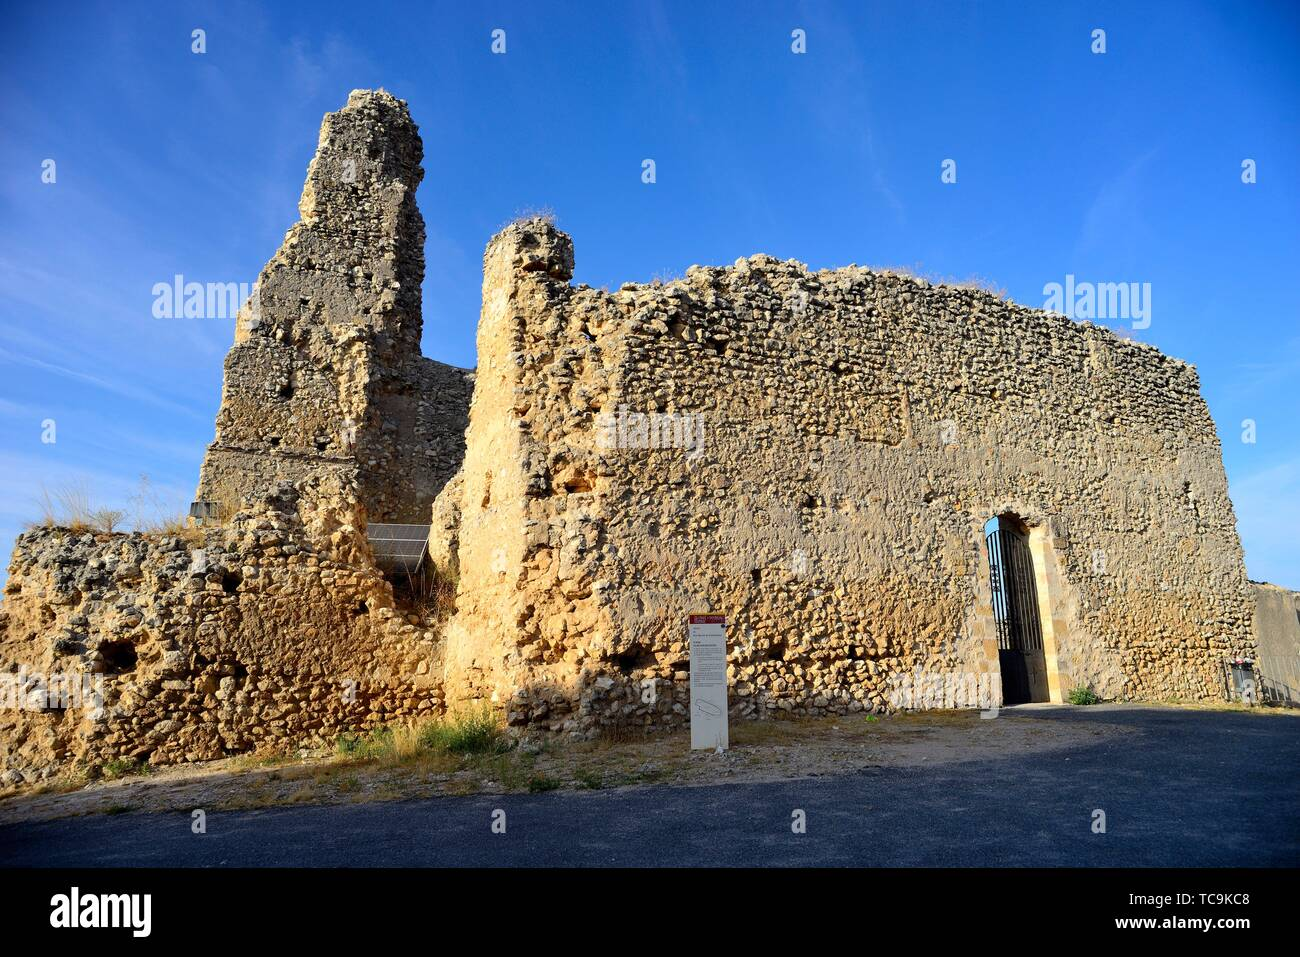 Ruins of the church of San Martin, Fuentidueña, Segovia, Spain. - Stock Image